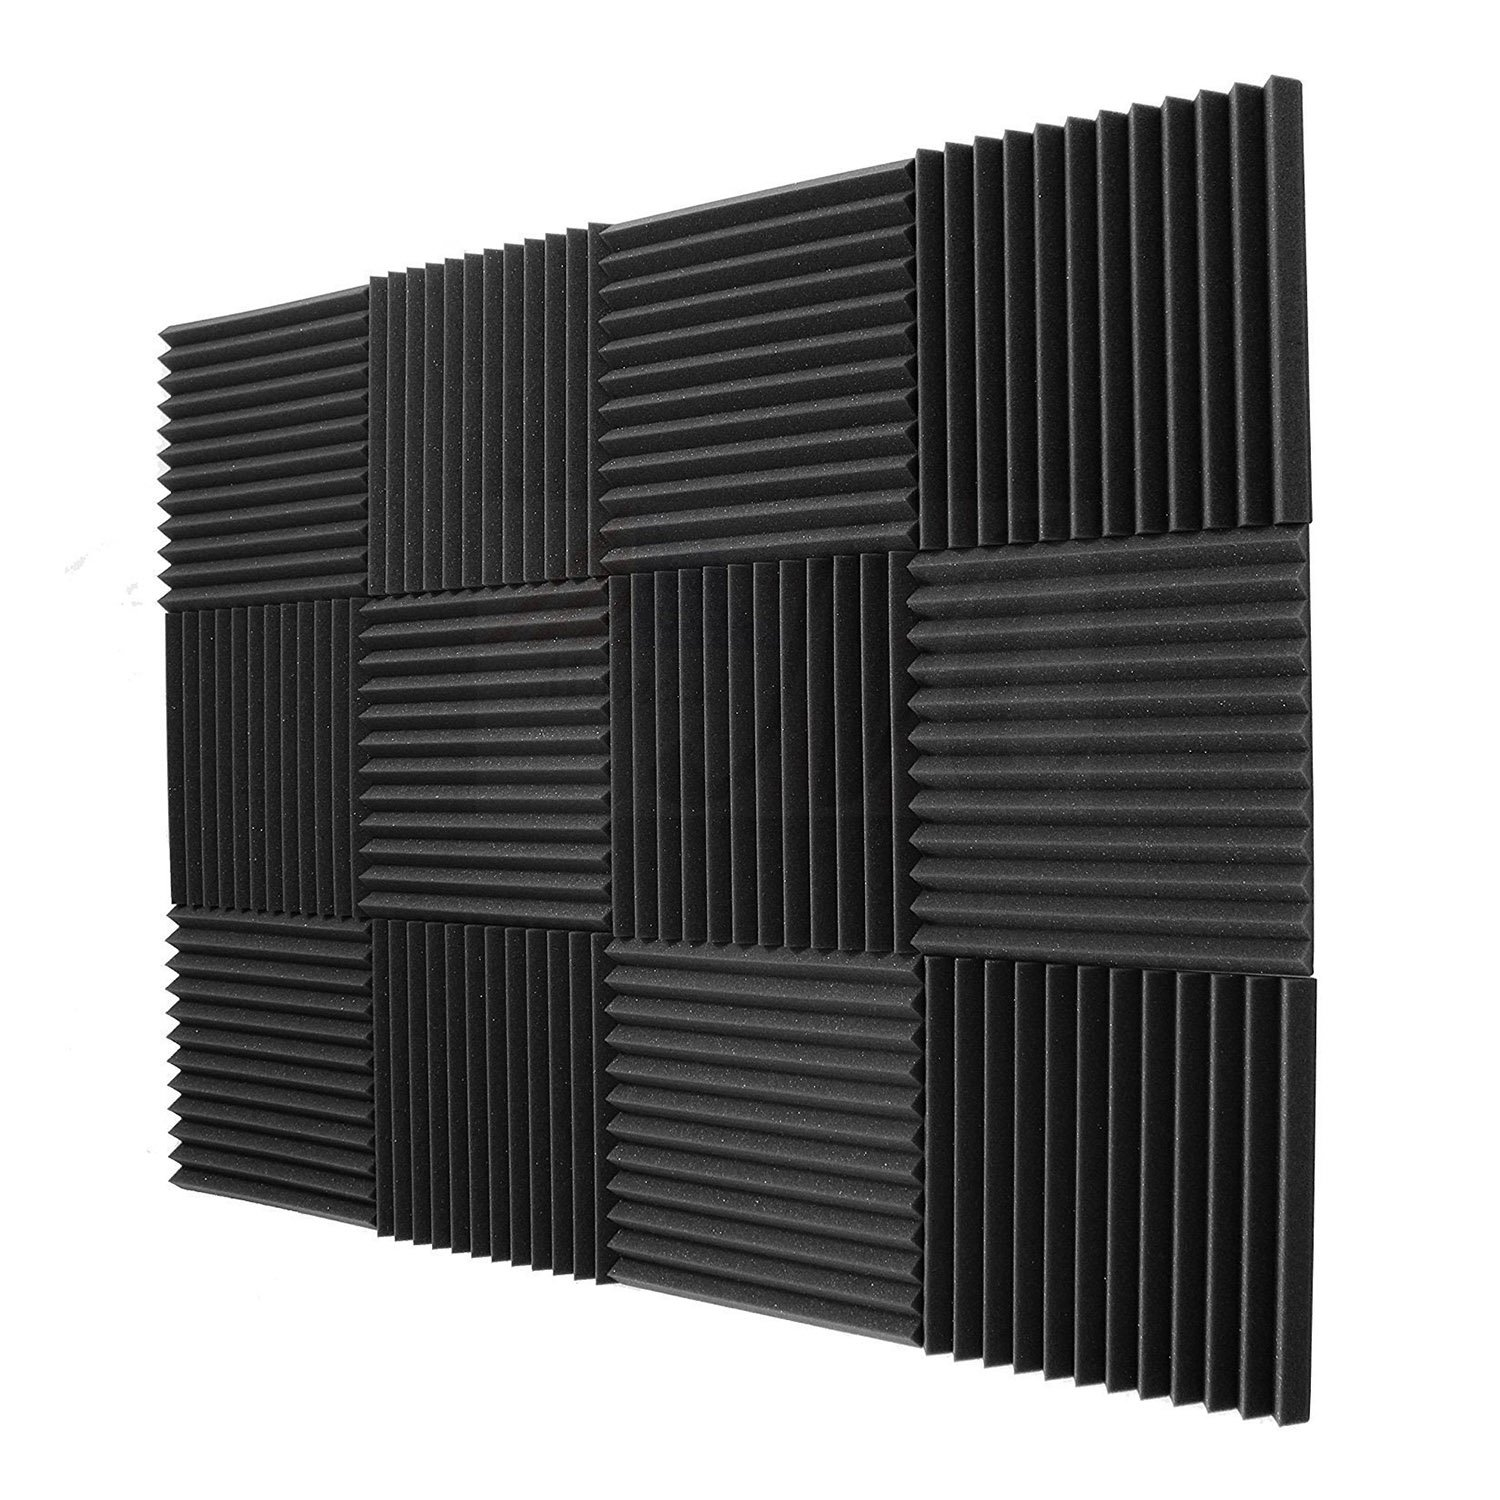 SODIAL 12 Pack- Acoustic Panels foam Engineering sponge Wedges Soundproofing Panels 1inch x 12 inch x 12inch 146085